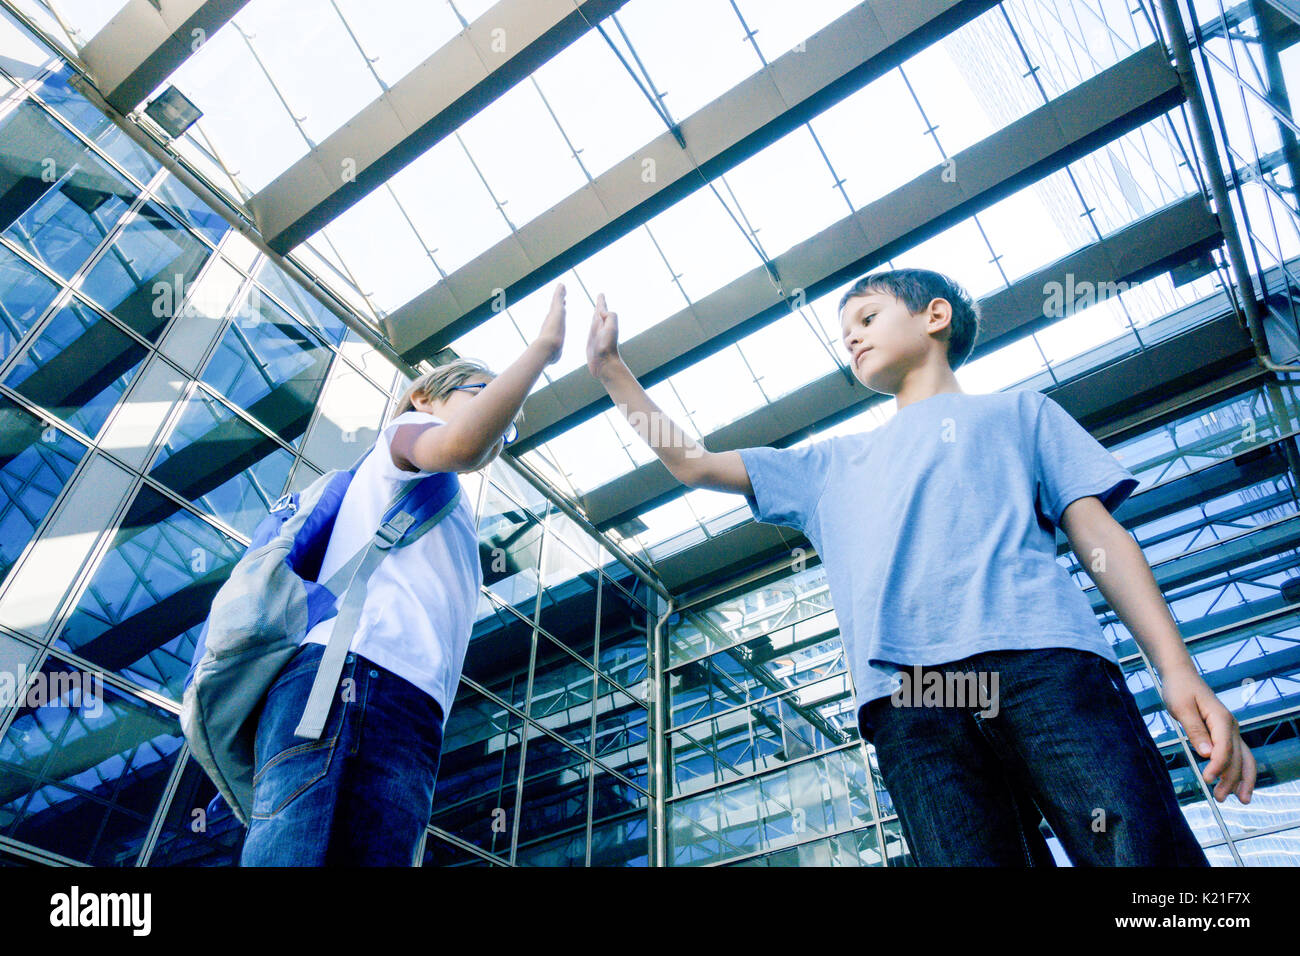 Two boys giving each other a high five outdoors - Stock Image